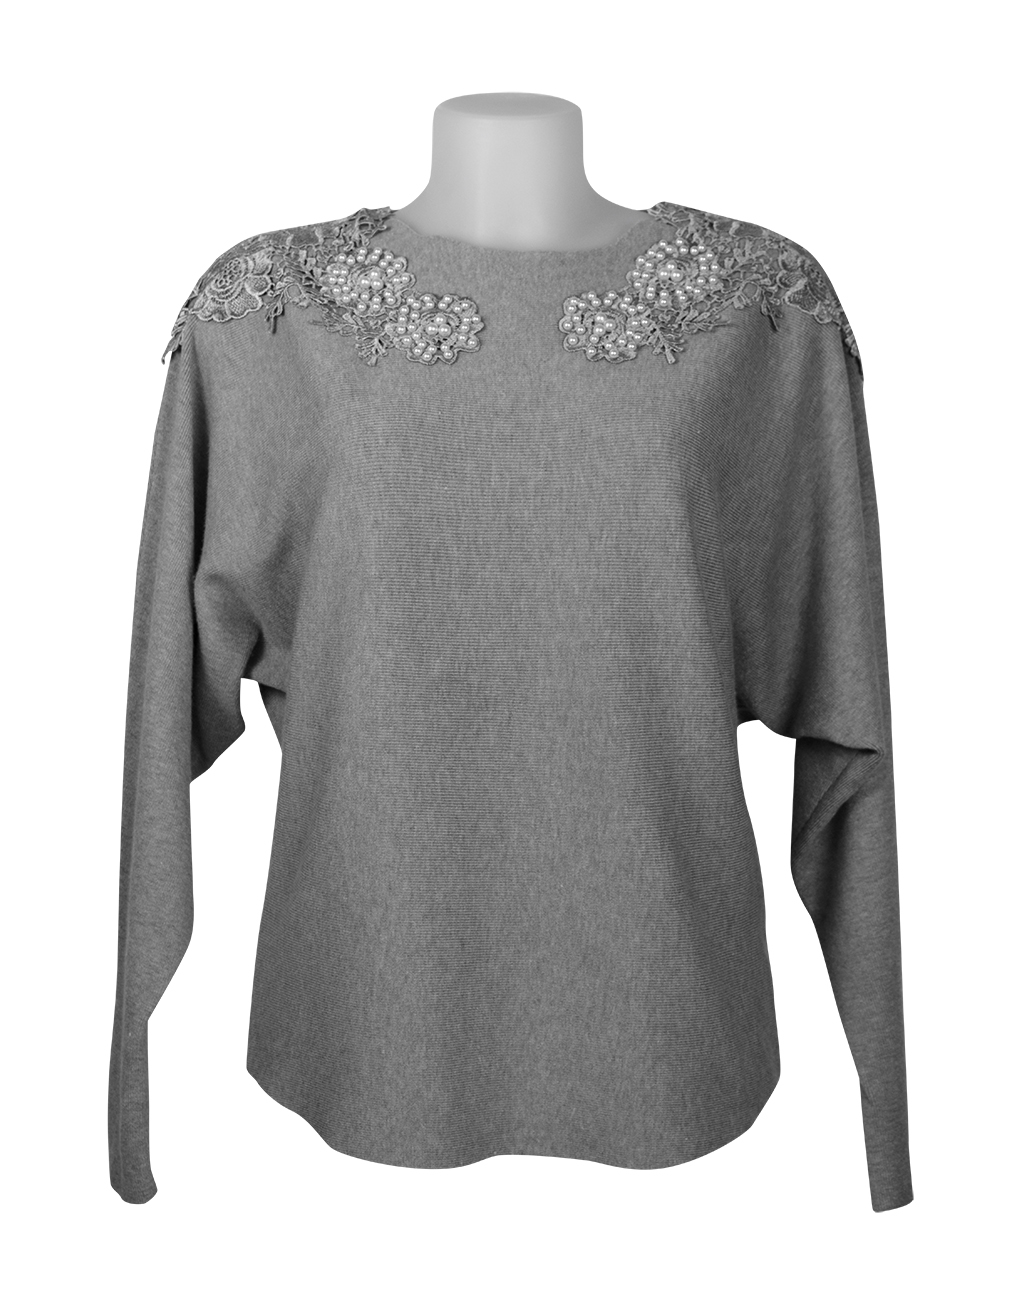 Italian Knitted top grey with beads